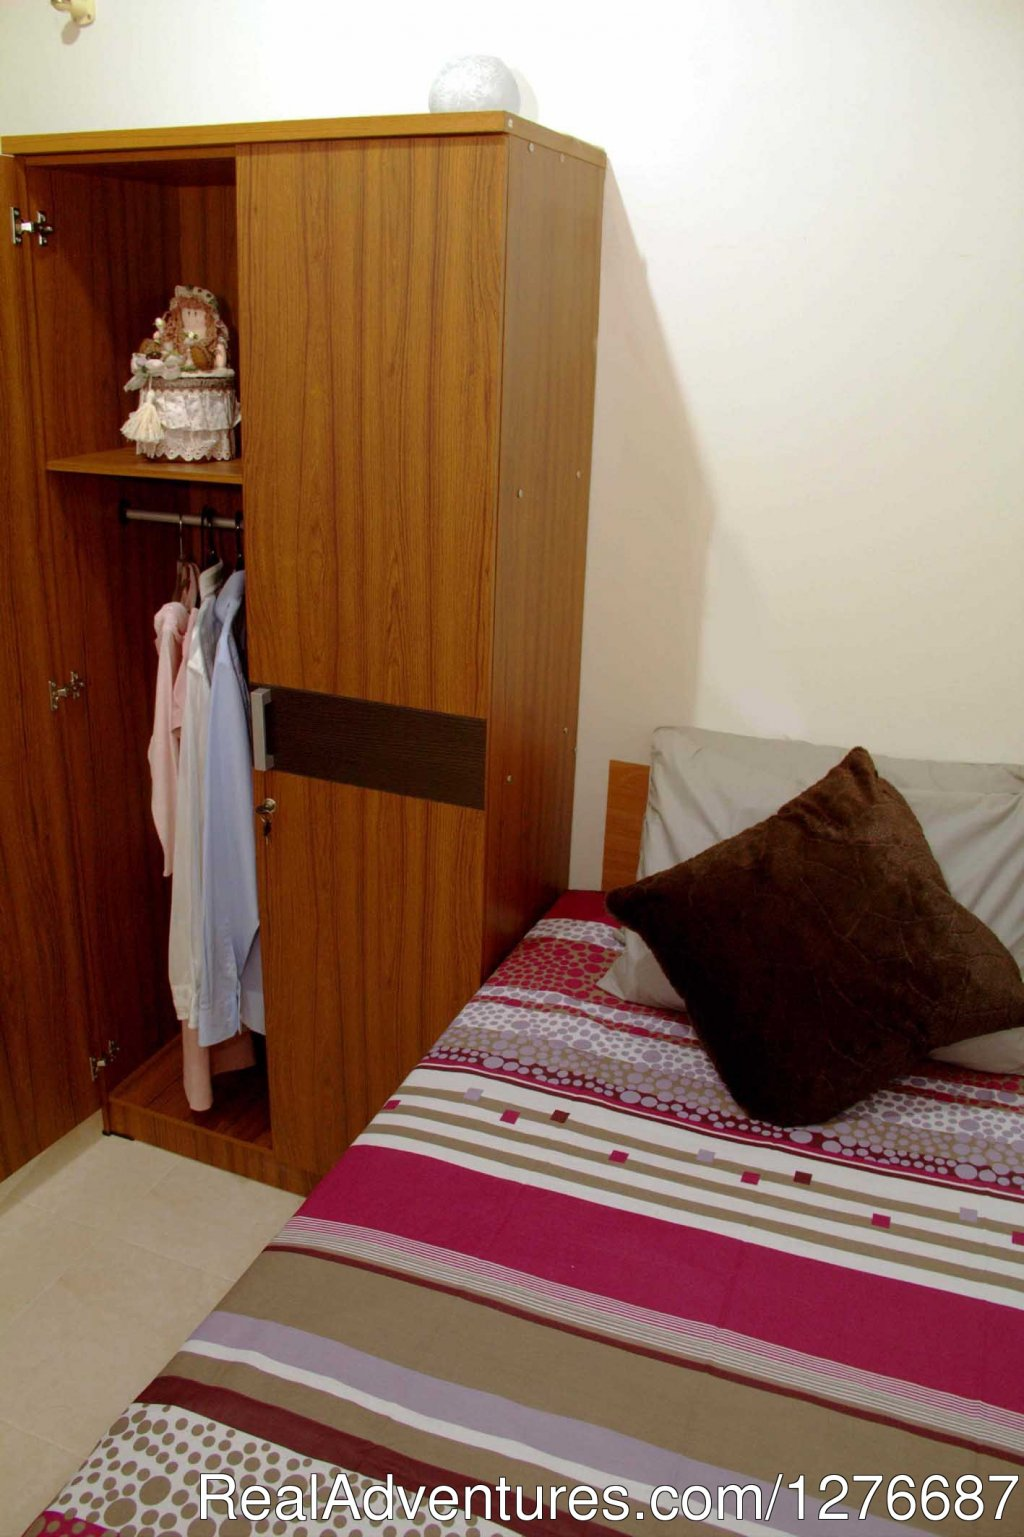 room type 2: 1 Single Bed